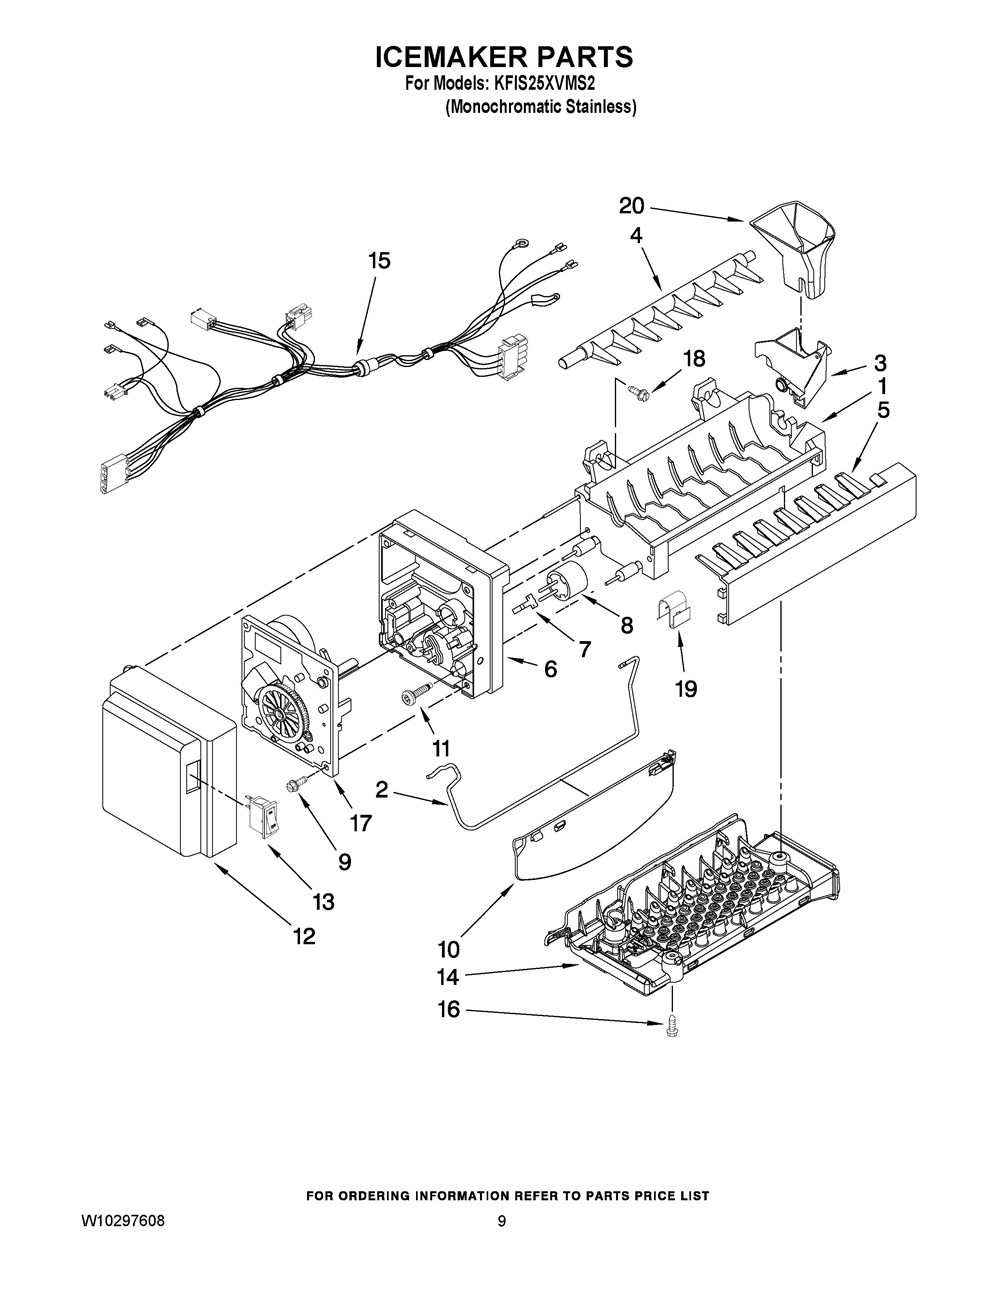 Wiring Database 2020: 26 Whirlpool Refrigerator Parts Diagram